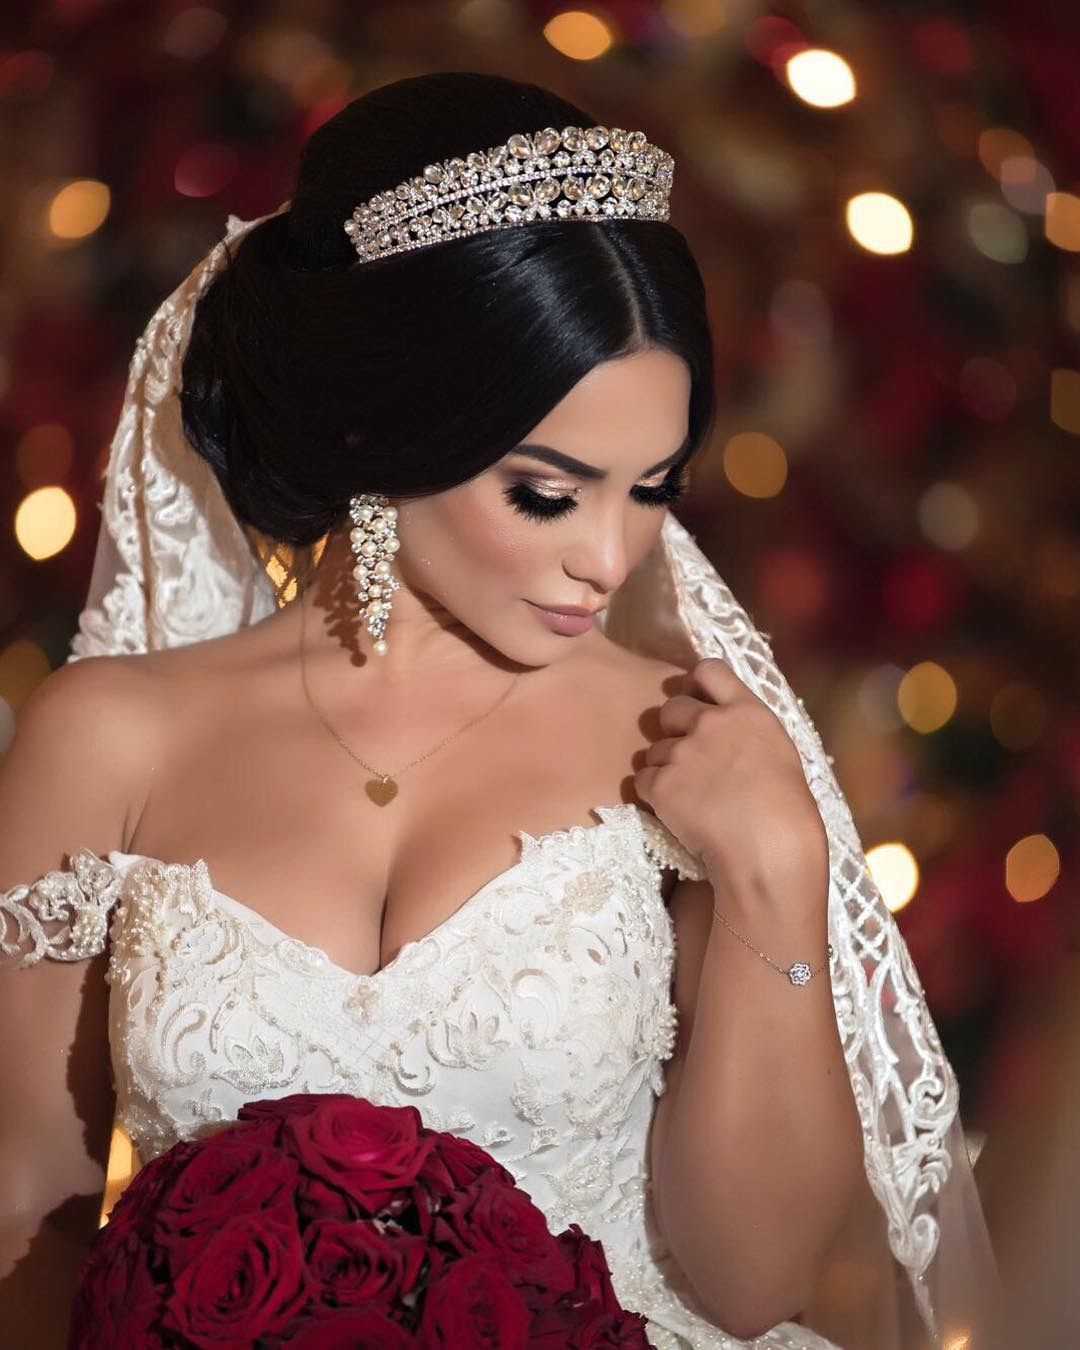 Pin by Rosamaria Russo on Boda Wedding hairstyles with